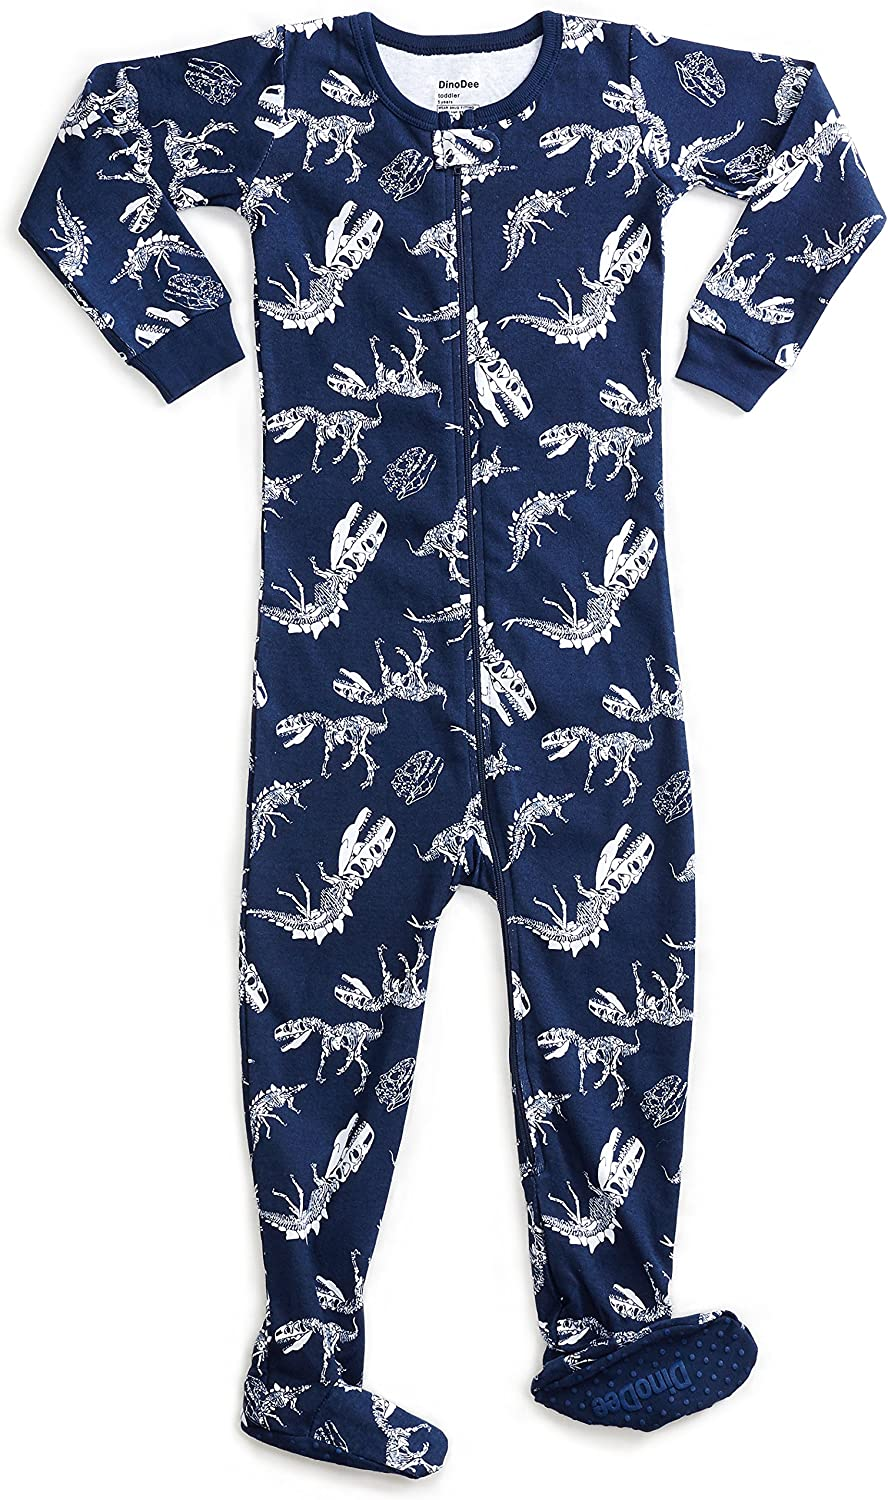 6 Months-5 Toddler DinoDee Baby Boys Footed Pajamas Sleeper 100/% Cotton Kids Pjs